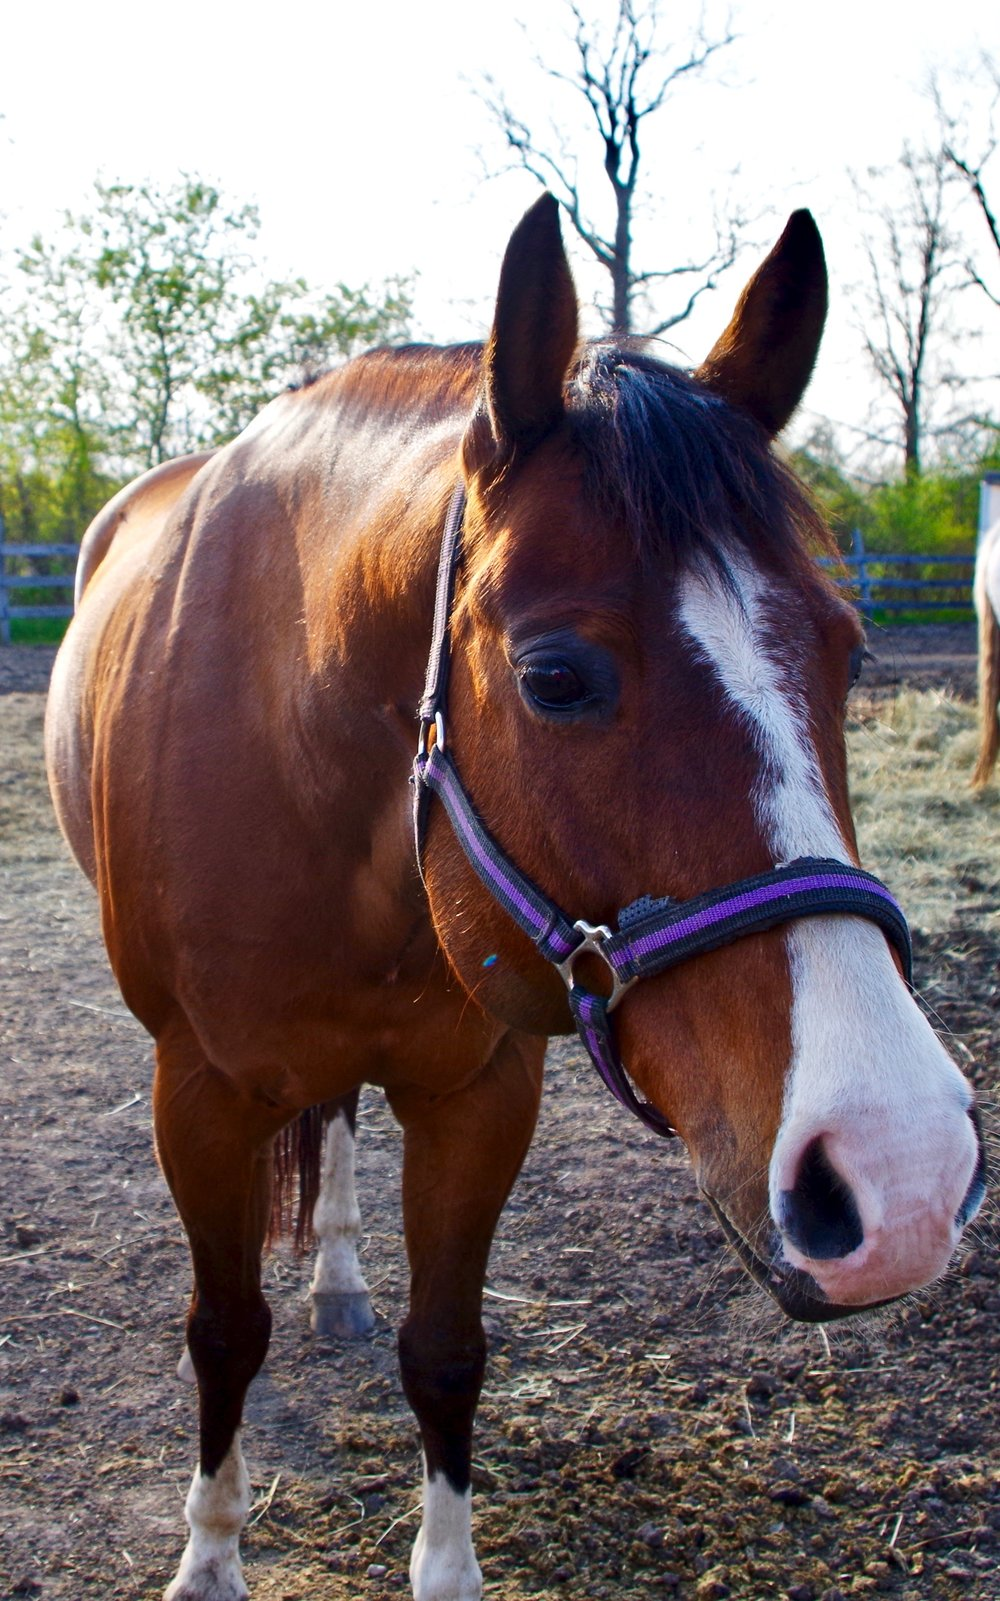 Reggie - Seeking a sponsor!Breed: American Quarter HorseReggie was donated to the farm by Michelle Burt. His gentle demeanor makes him a perfect first horse for many of our new riders.